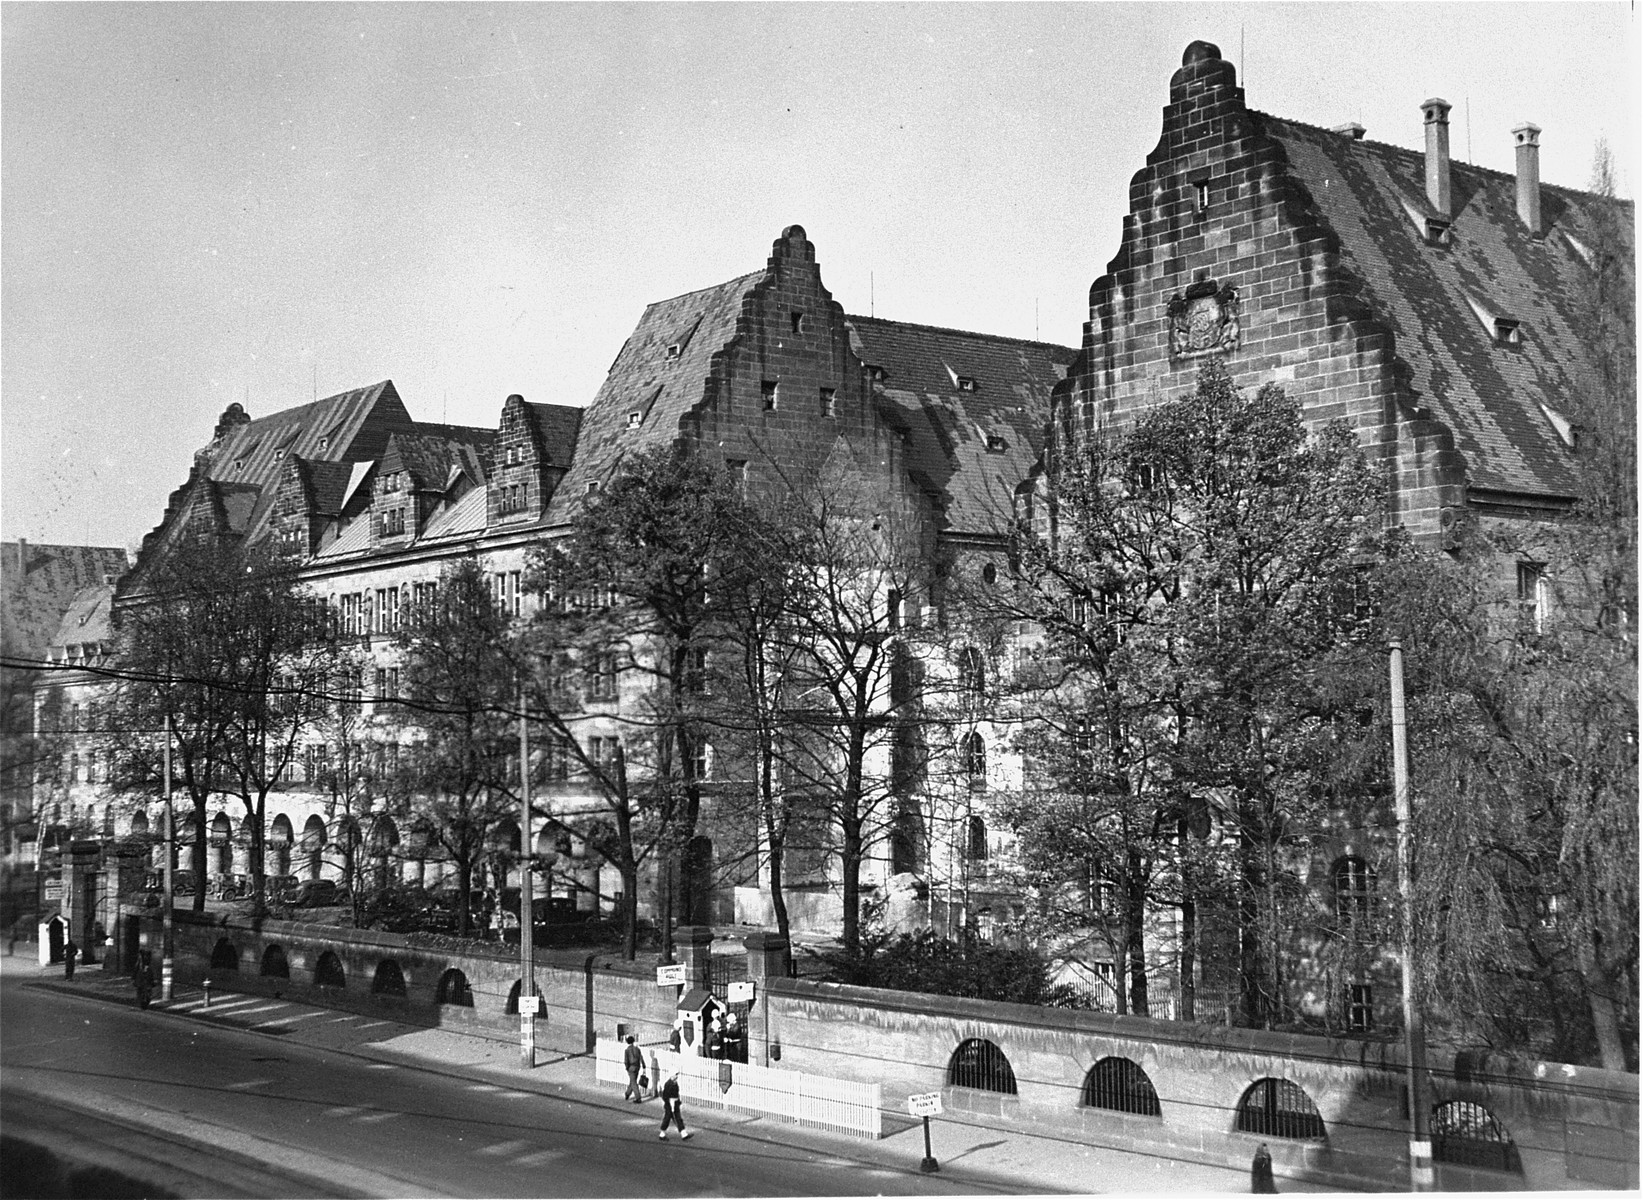 View of the Palace of Justice in Nuremberg, where the International Military Tribunal trial of war criminals was held.